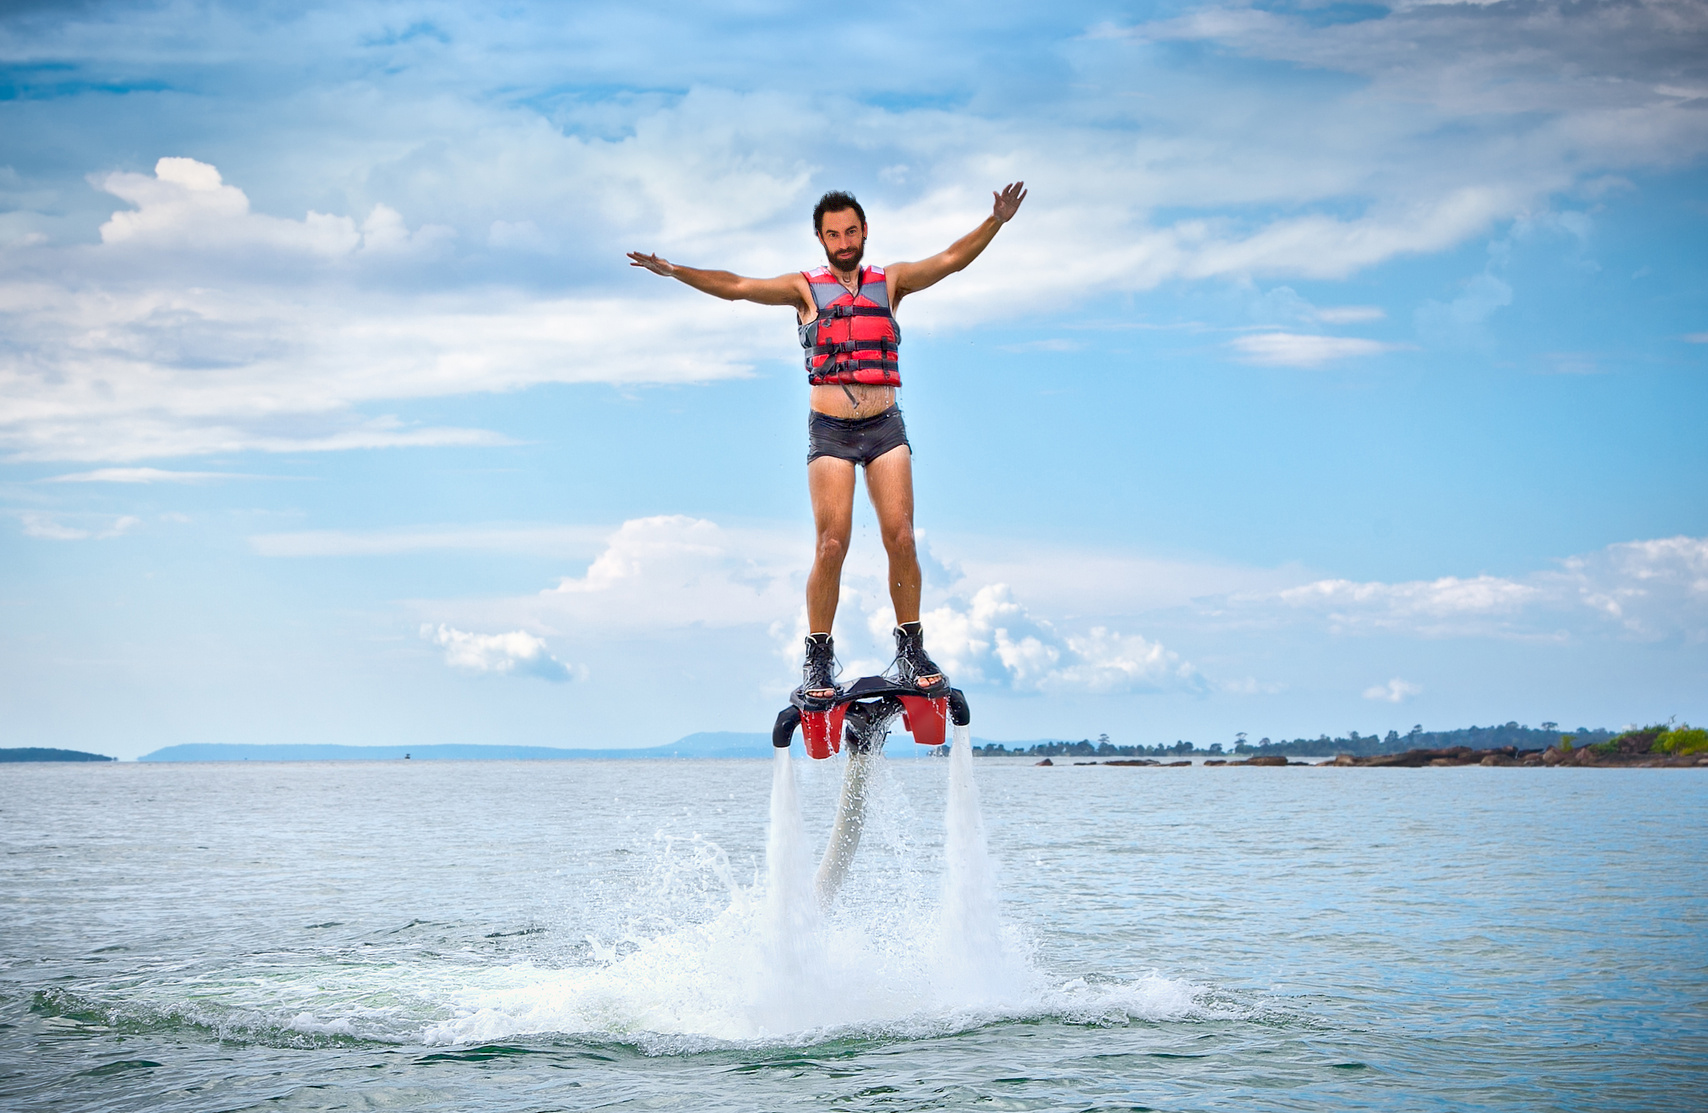 The new spectacular sport called  flyboard